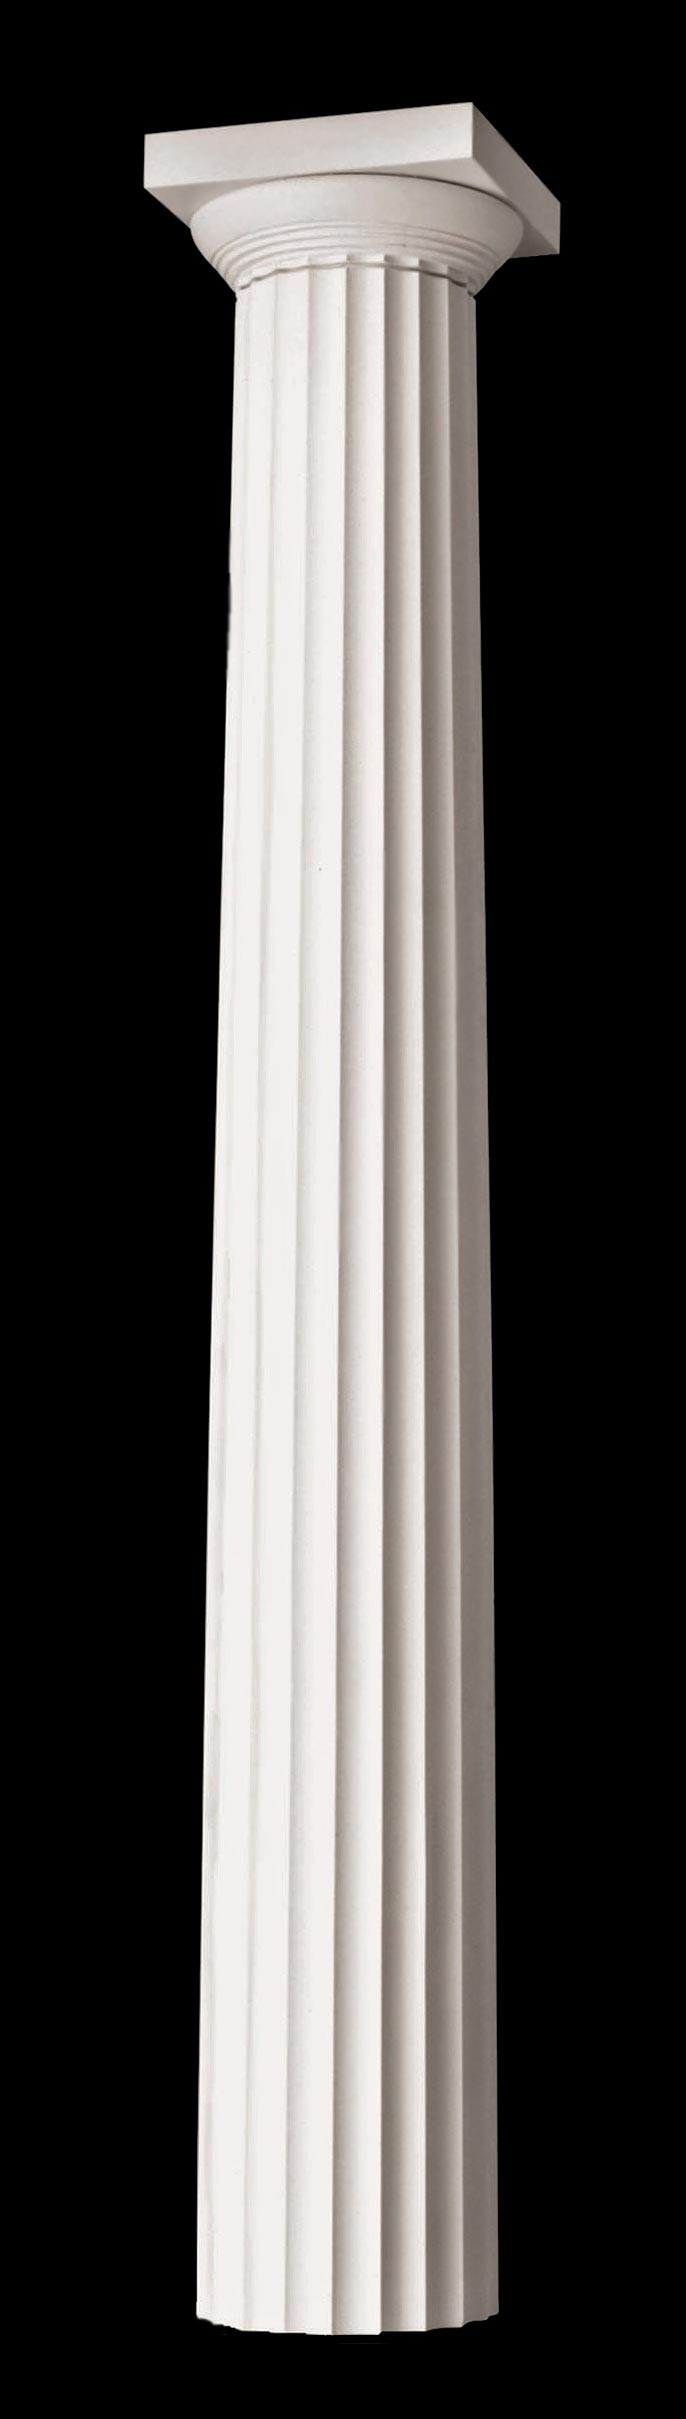 Fluted architectural greek doric wood columns csi code for Architectural wood columns